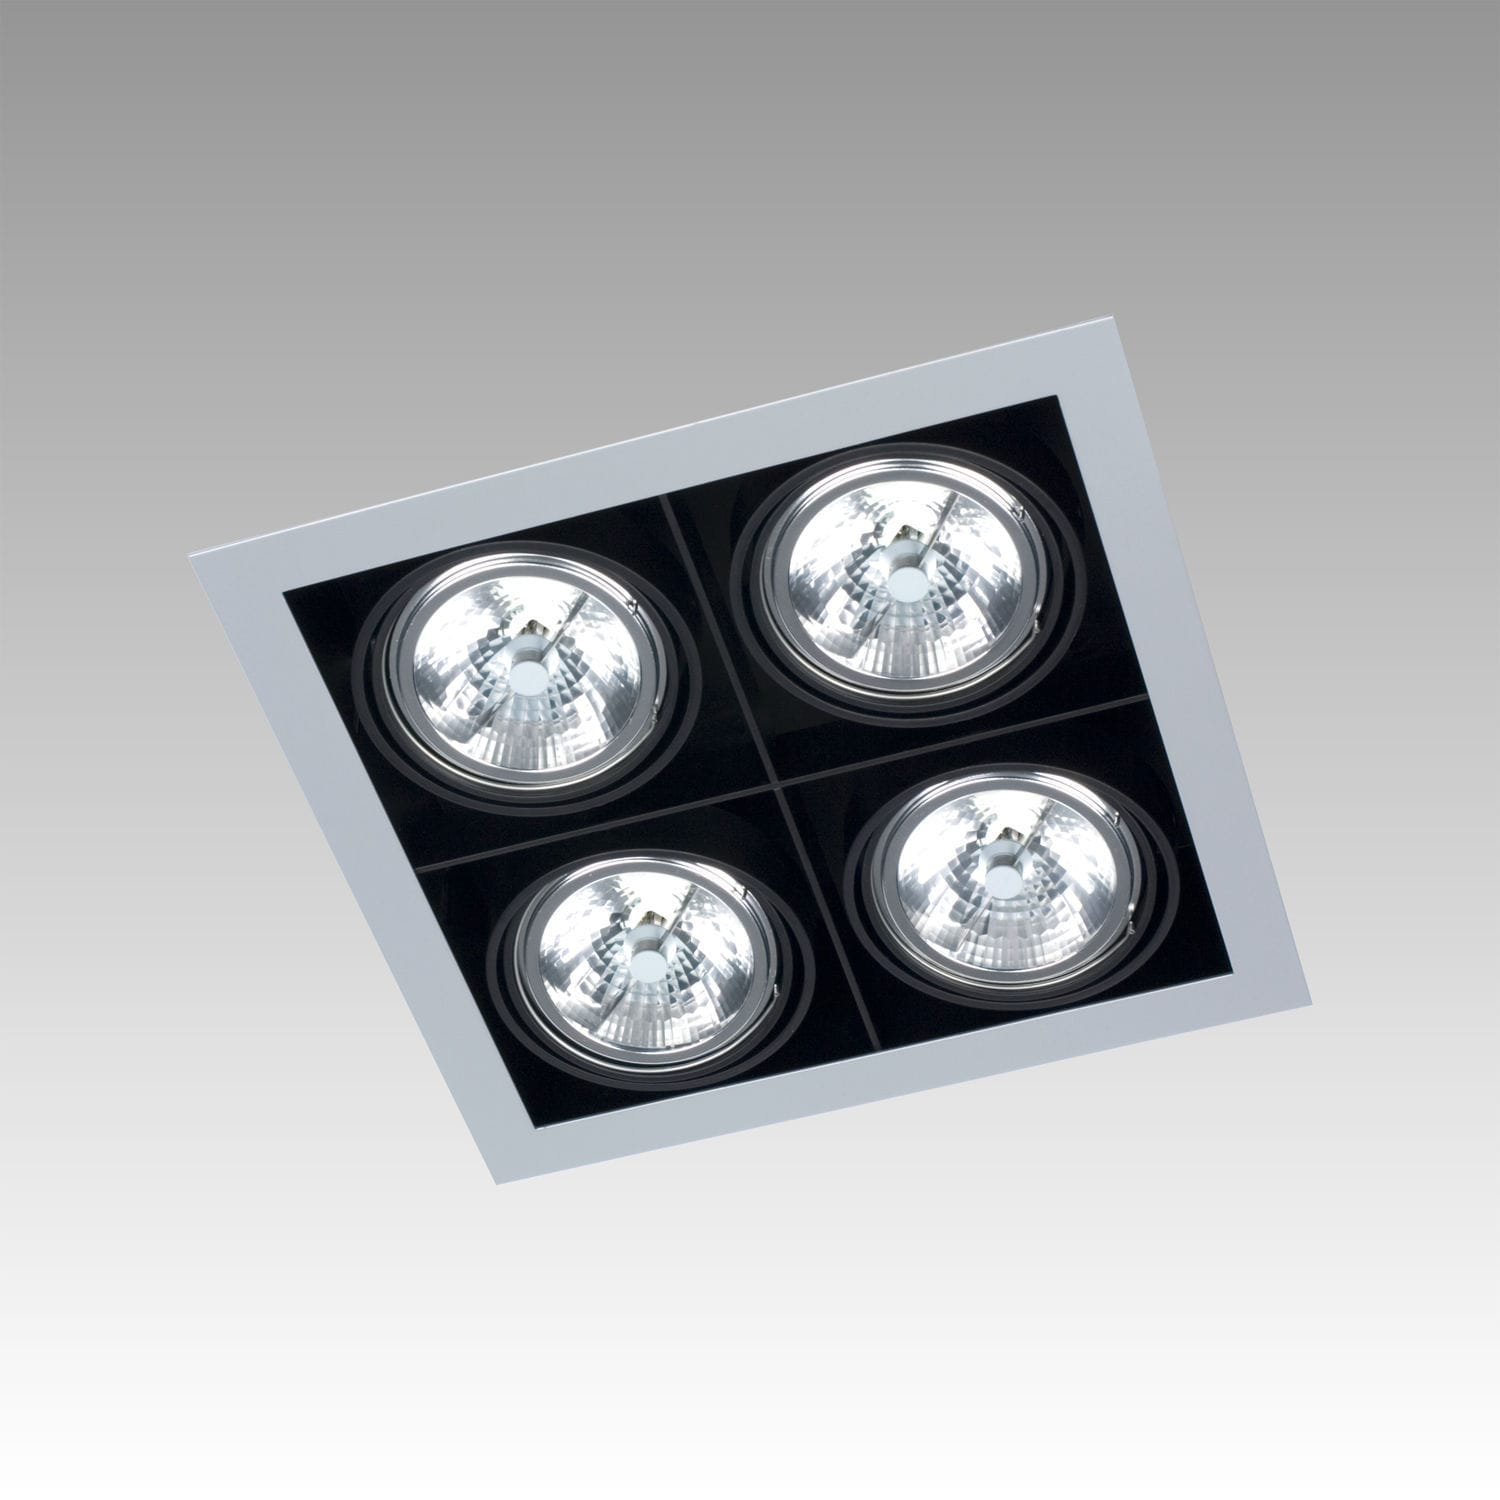 Recessed ceiling spotlight / indoor / LED / square - FRAME SINGLE ... for Ceiling Double Spot Light  173lyp